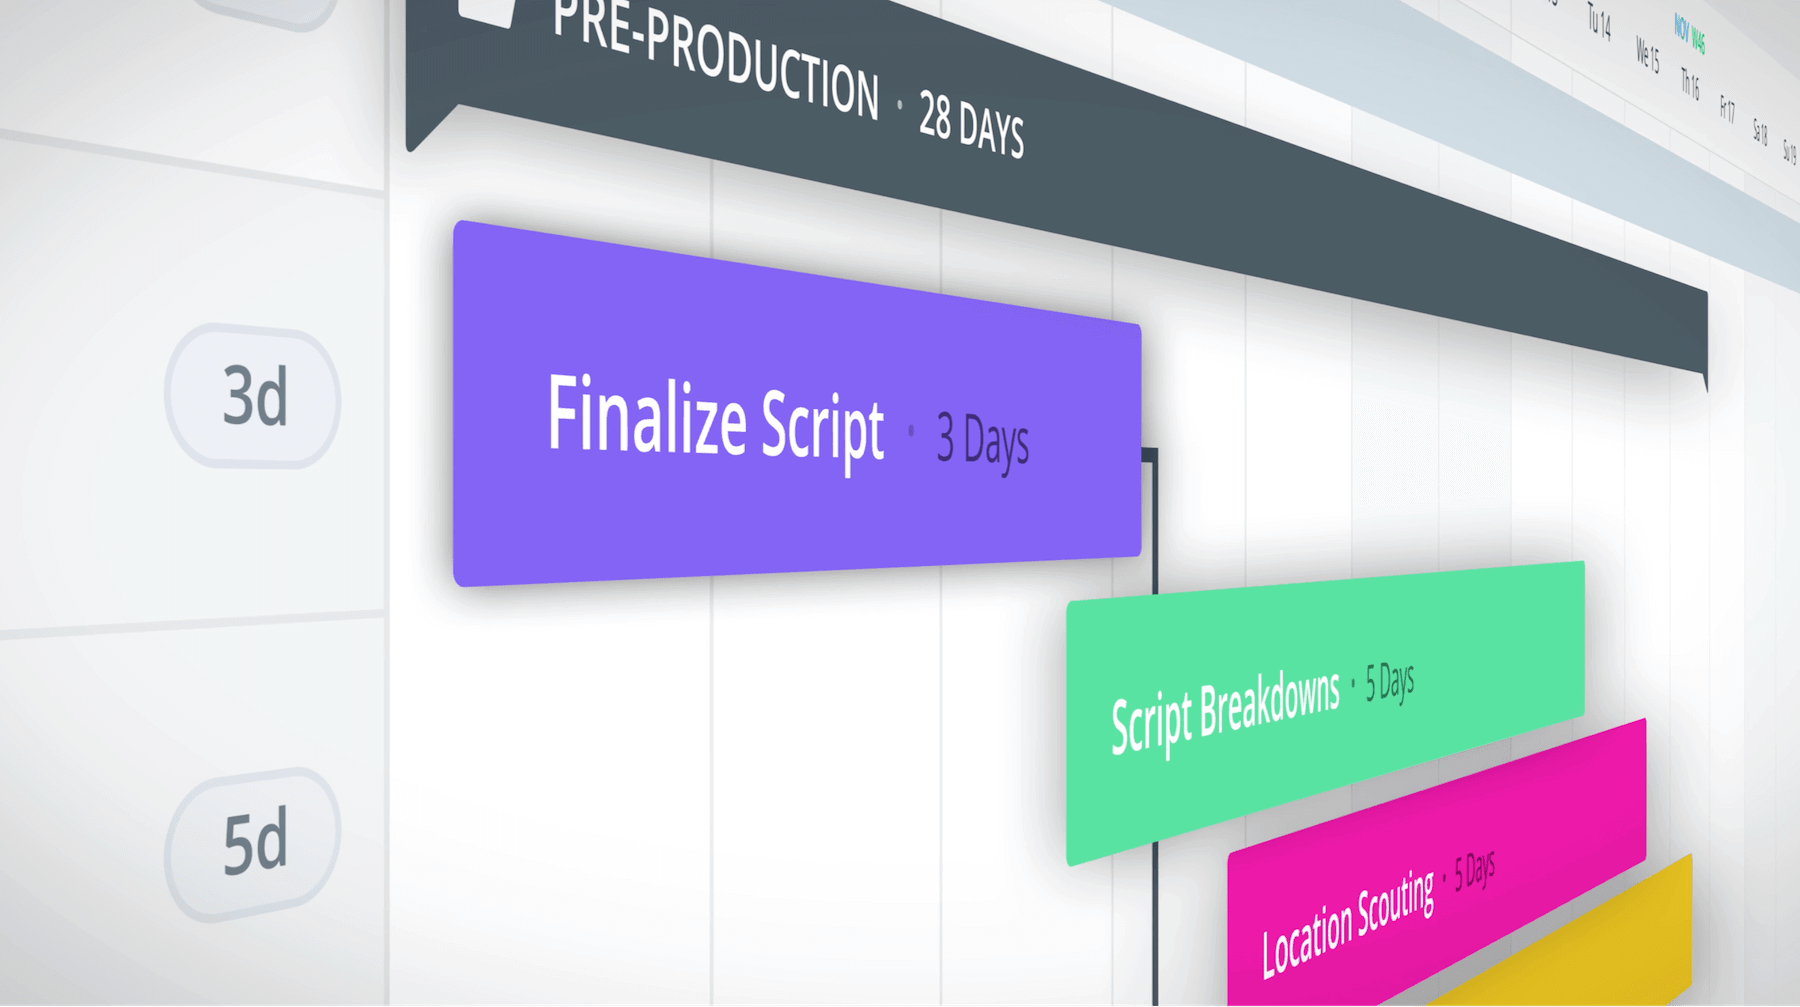 Production Calendar - Events Flying In - StudioBinder Production Management Software